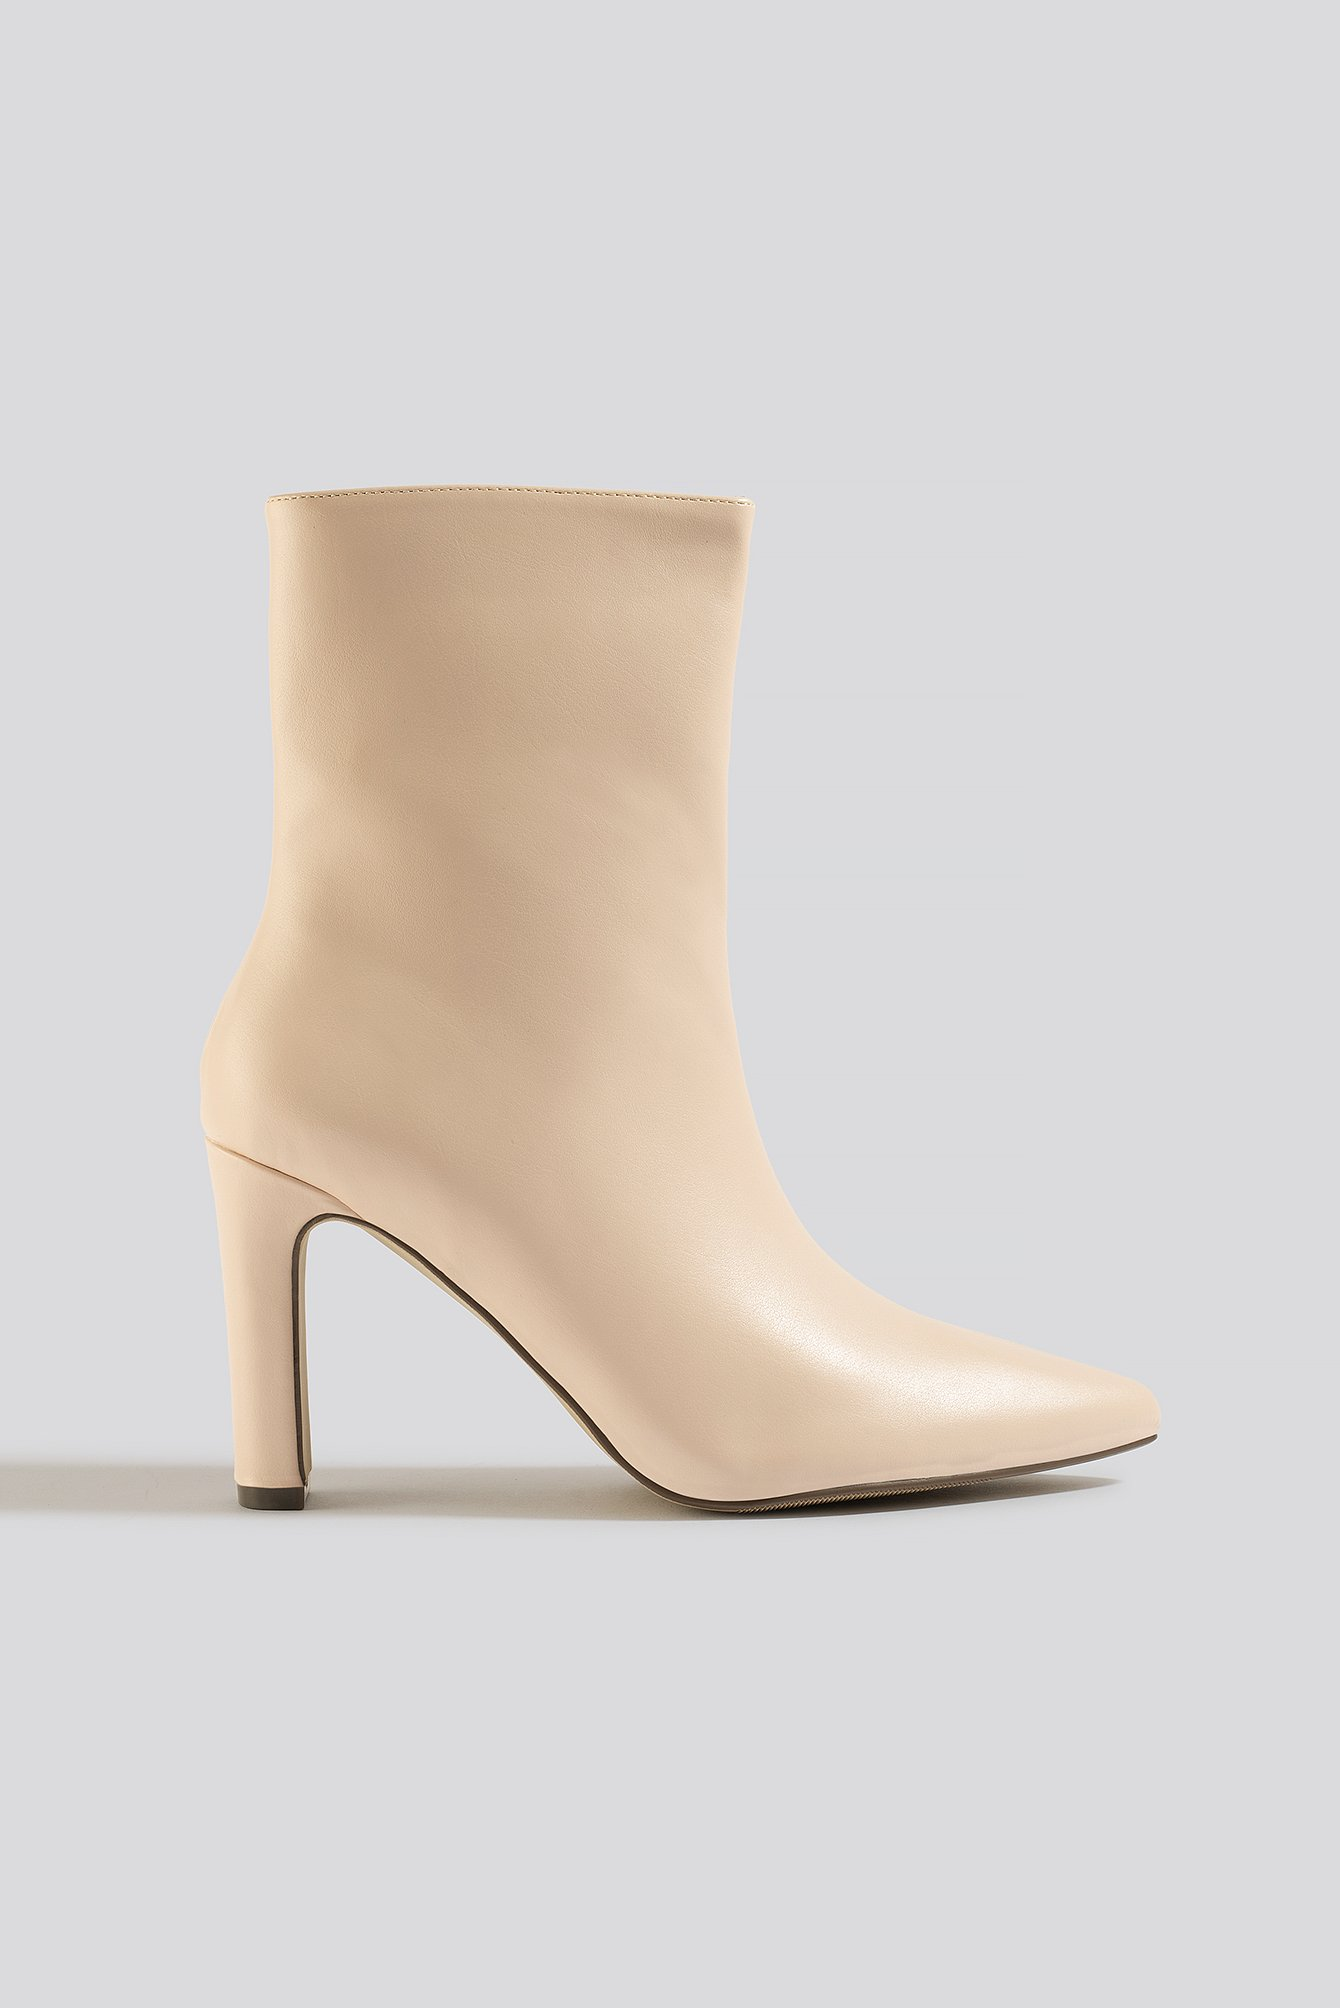 Na-Kd Shoes Pointy Flat Heel Boots - Beige